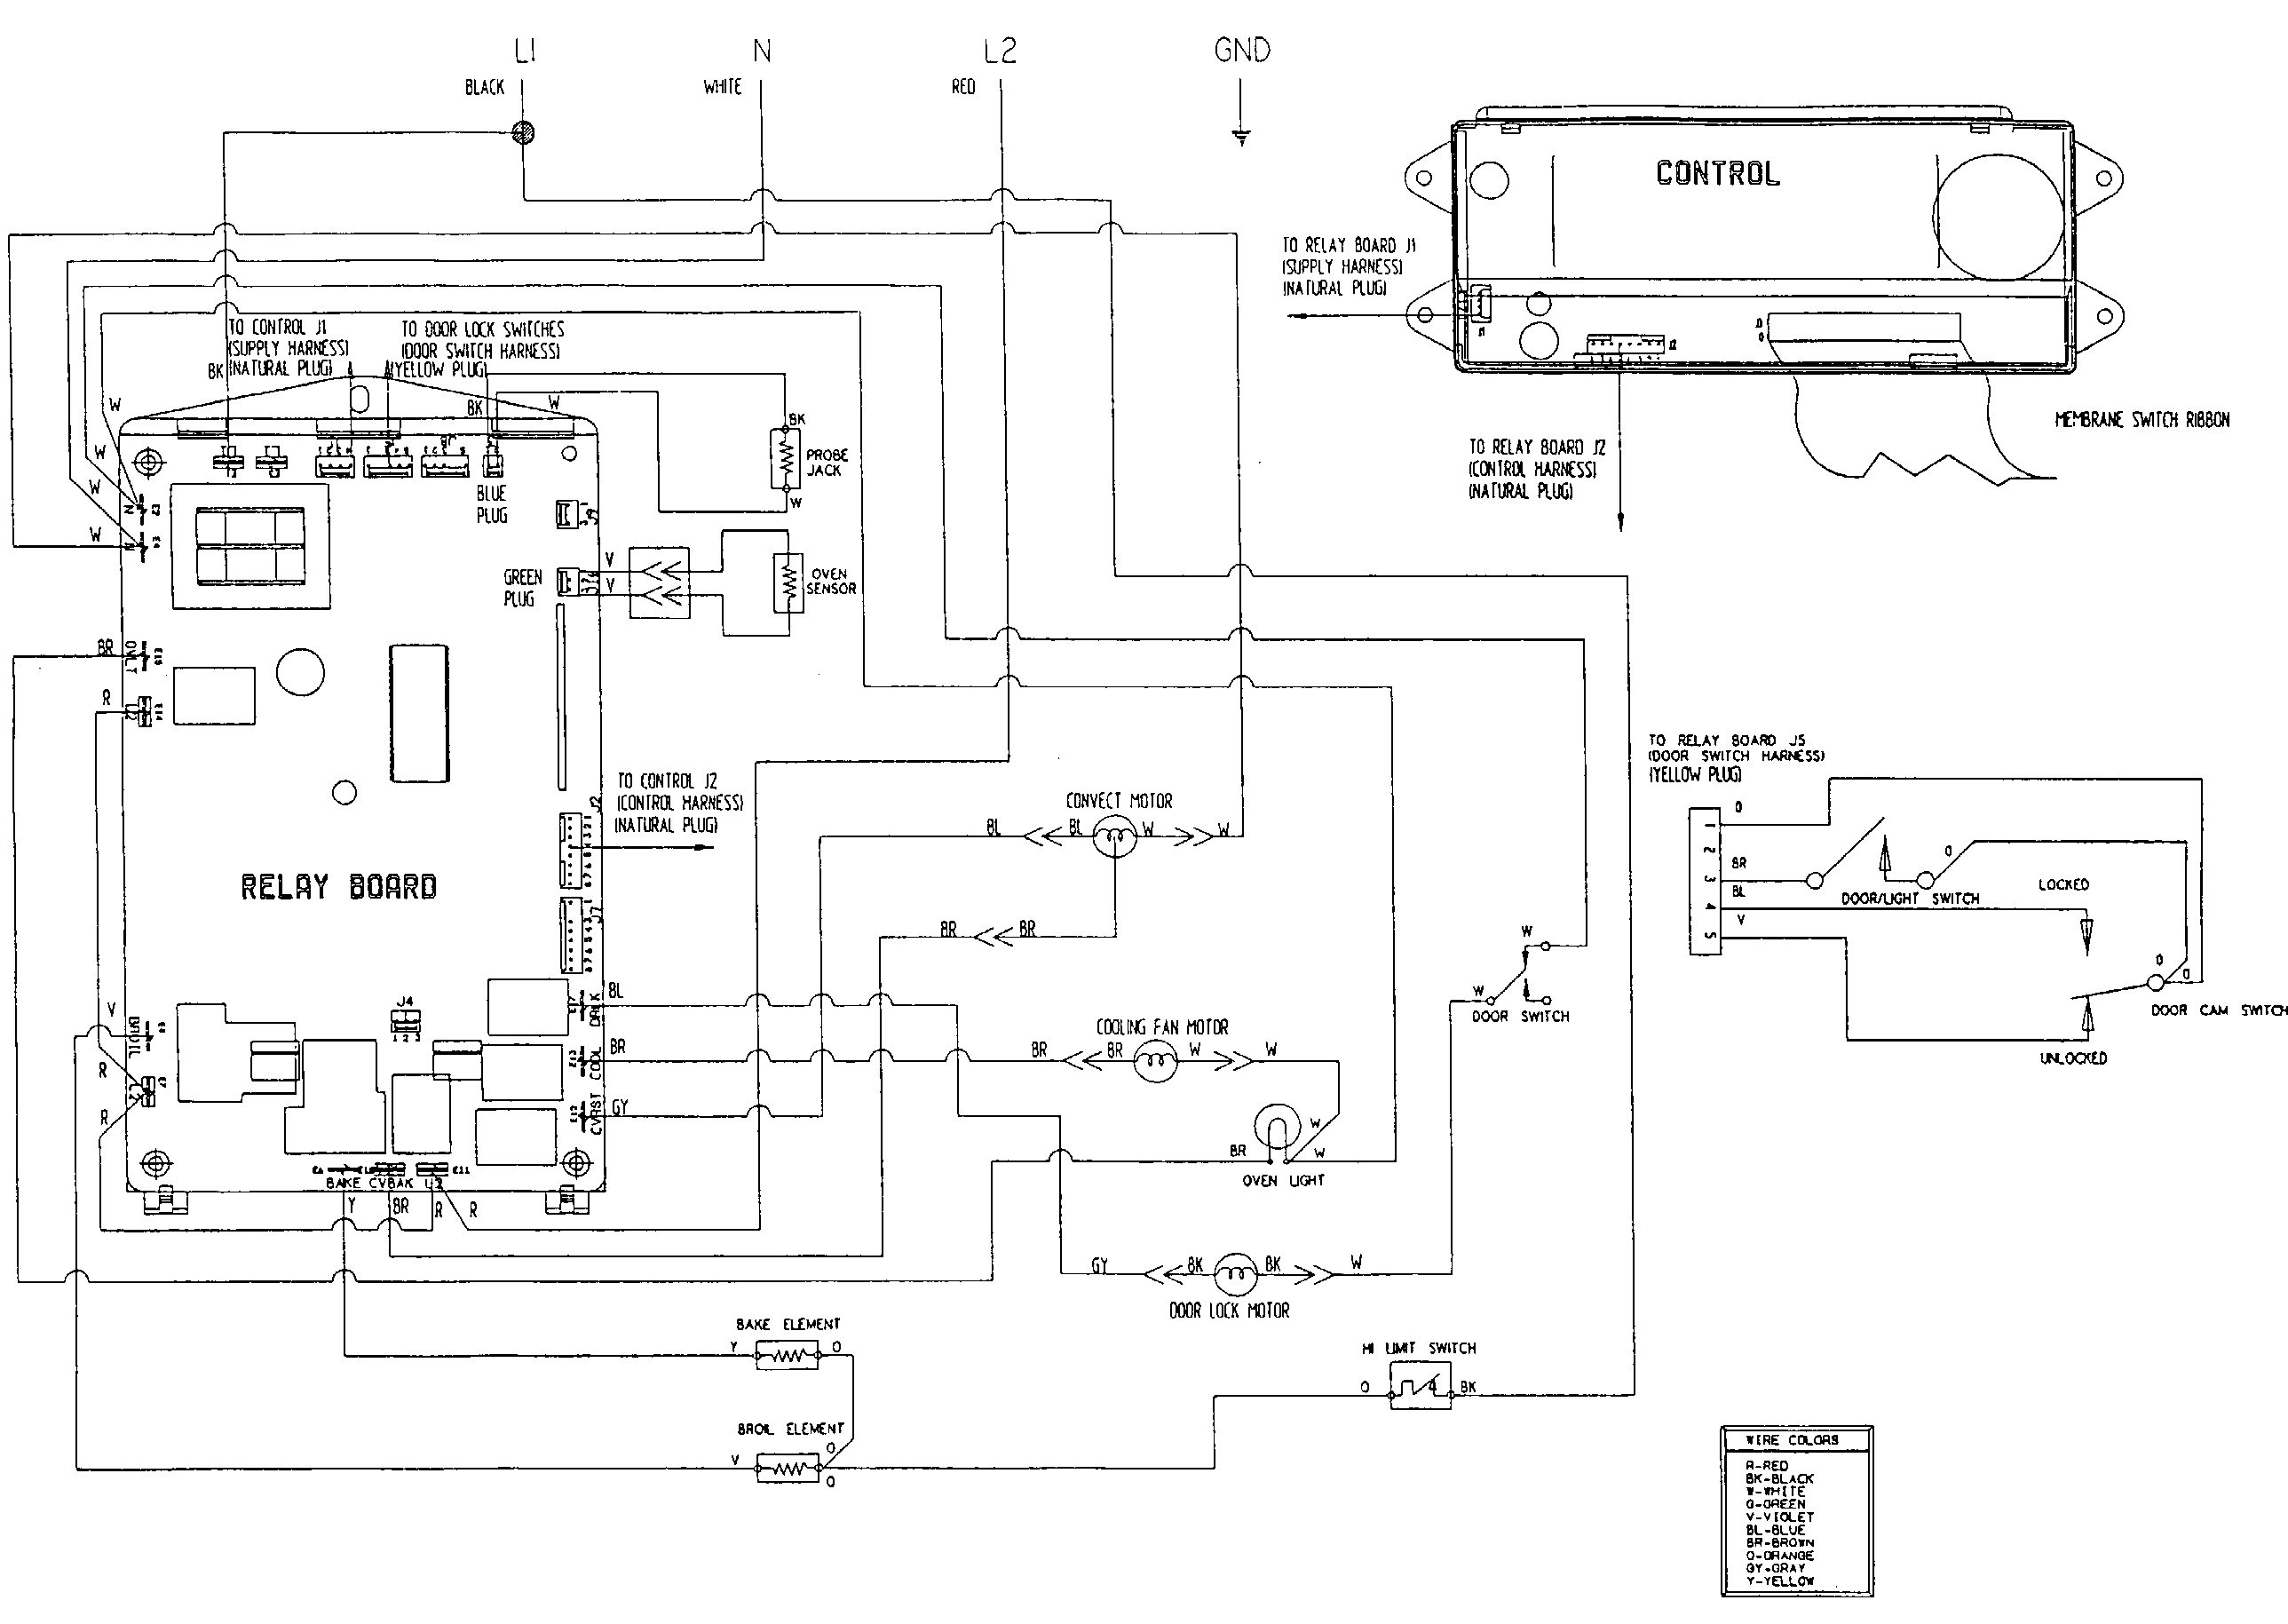 electric oven thermostat wiring diagram Collection-wiring diagram for oven  thermostat free wiring diagram rh. DOWNLOAD. Wiring Diagram ...